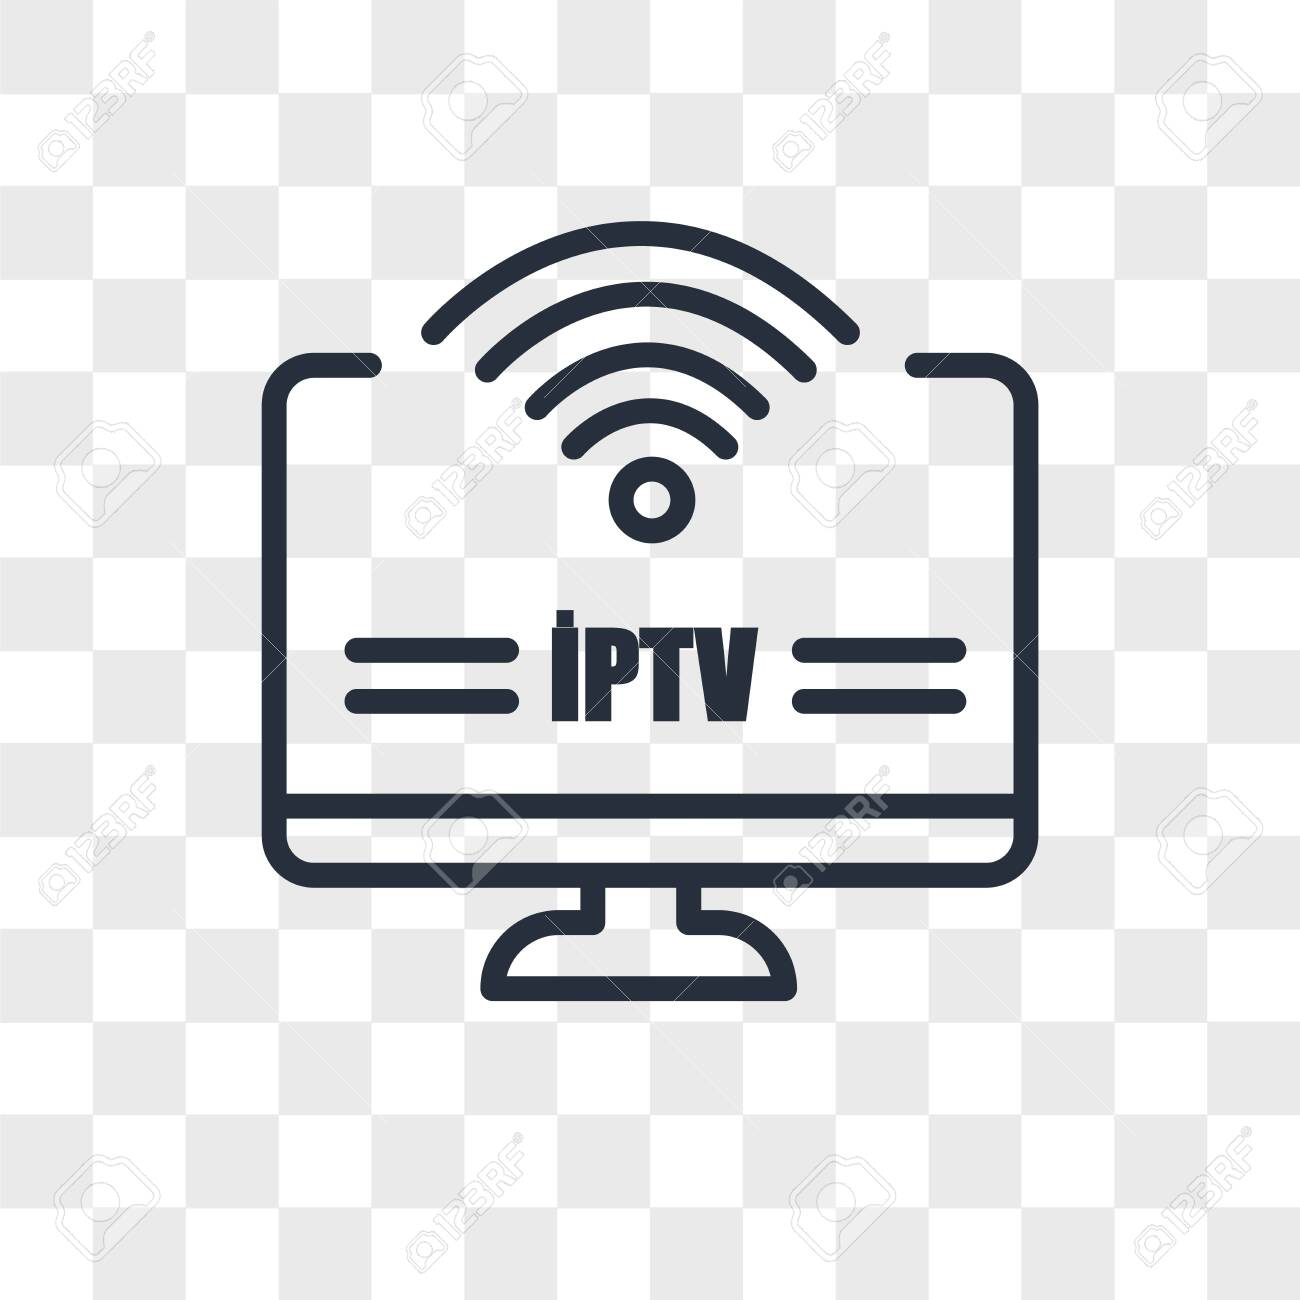 iptv vector icon isolated on transparent background, iptv logo concept - 150639210